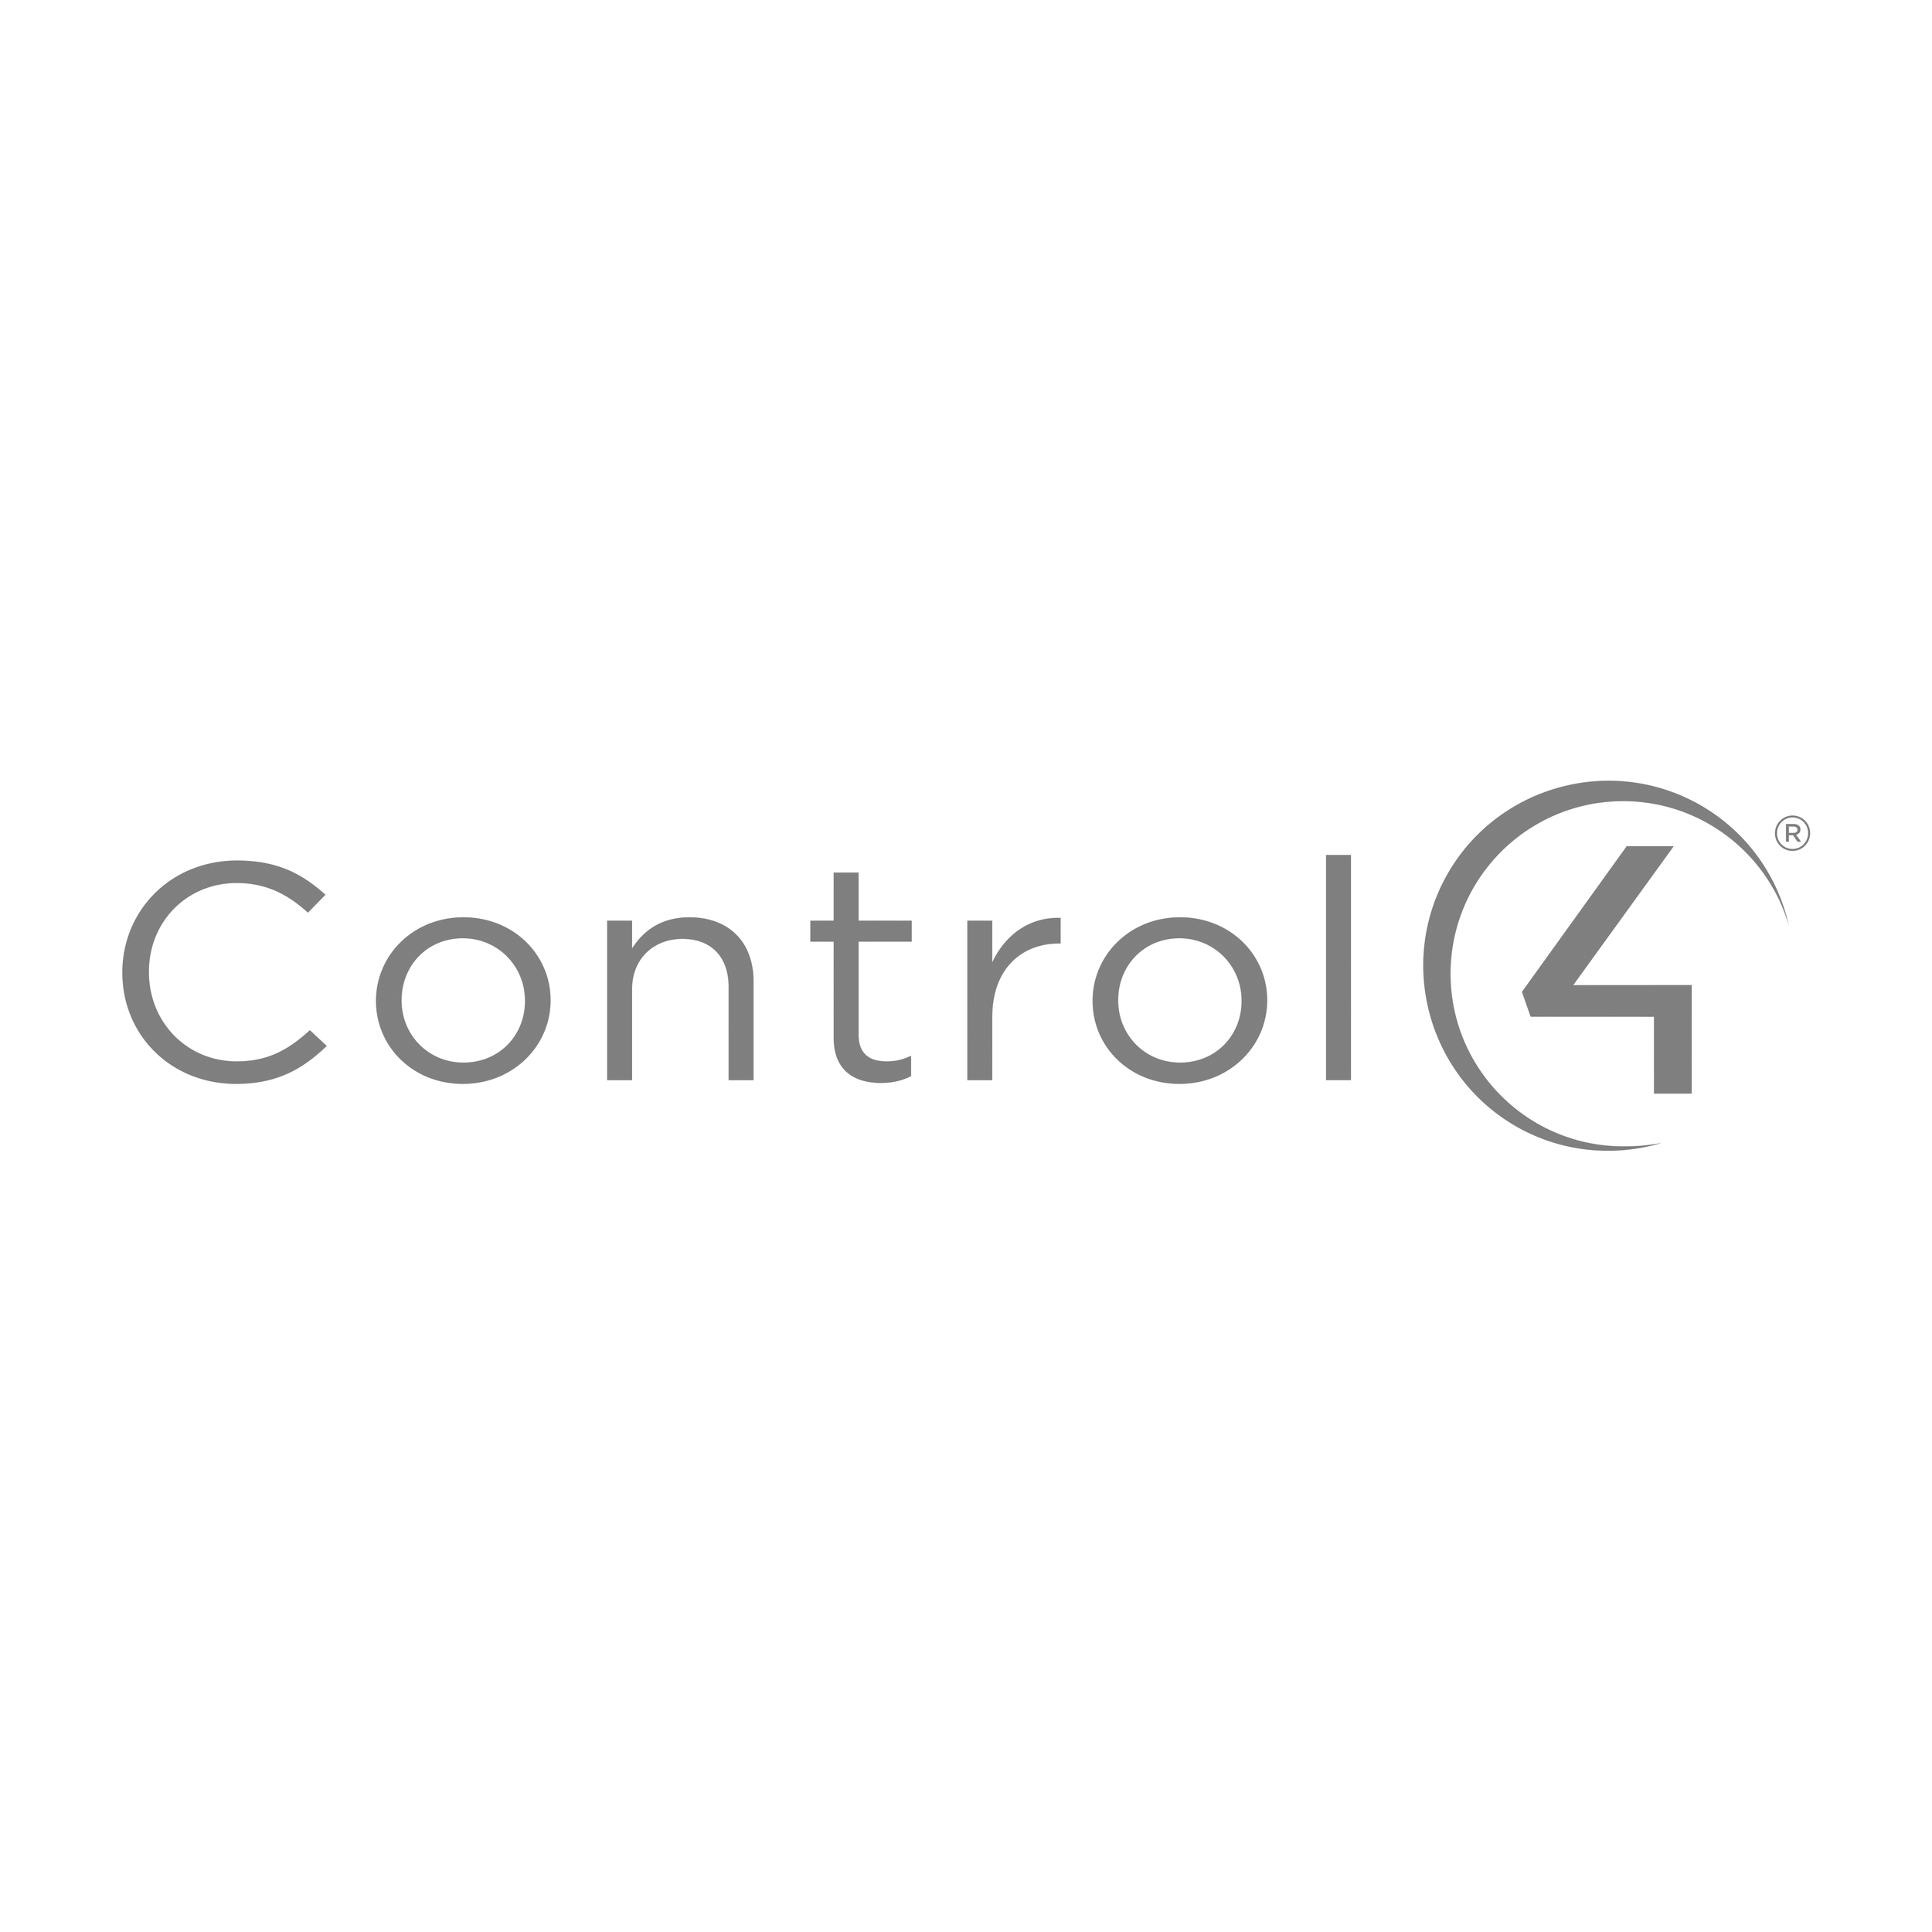 Control4_Logo_Gray.png